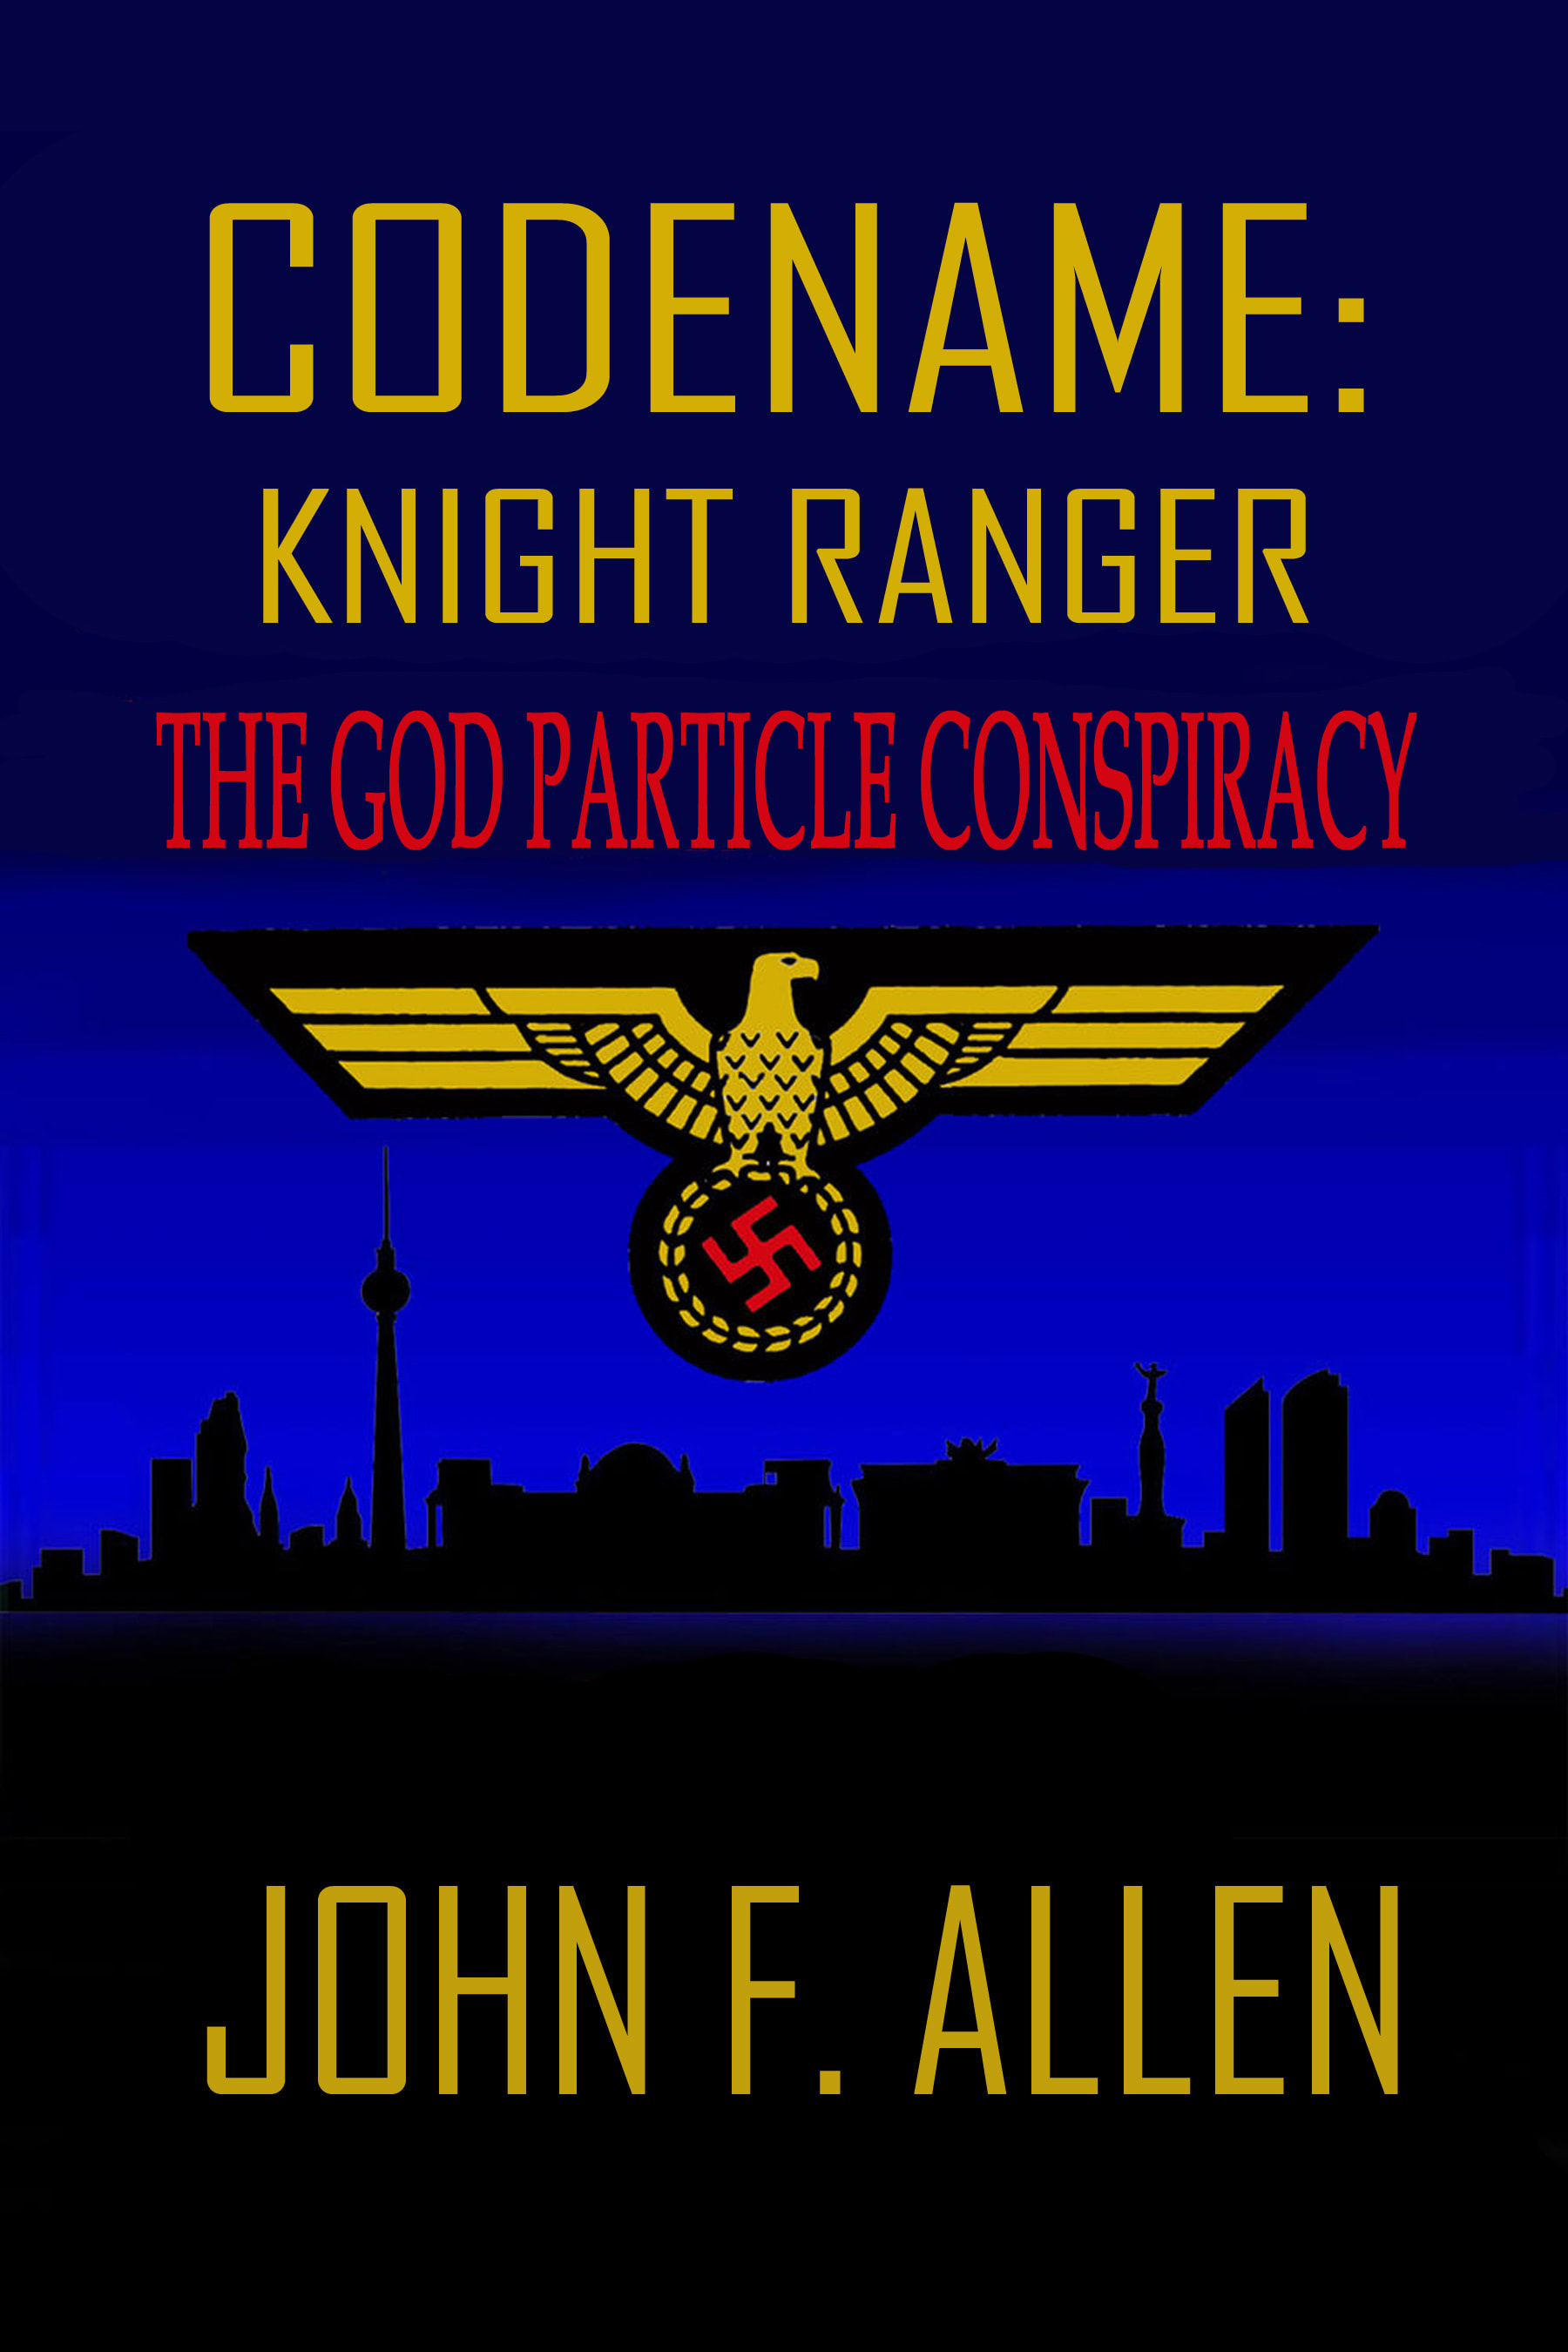 Codename Knight Ranger: The God Particle Conspiracy